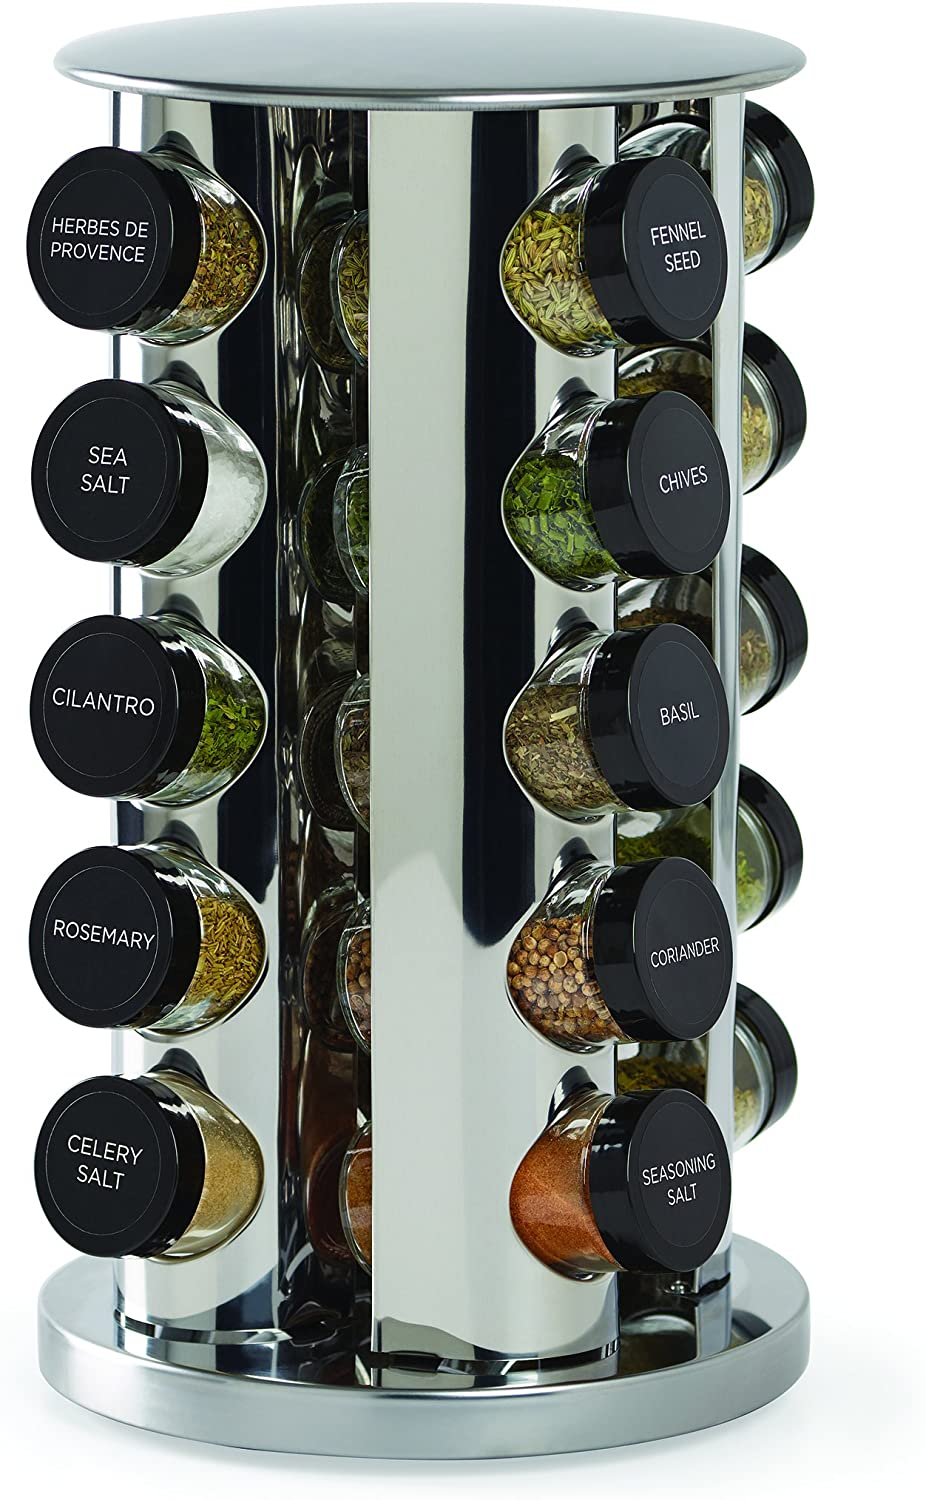 Turning spice rack (loaded).